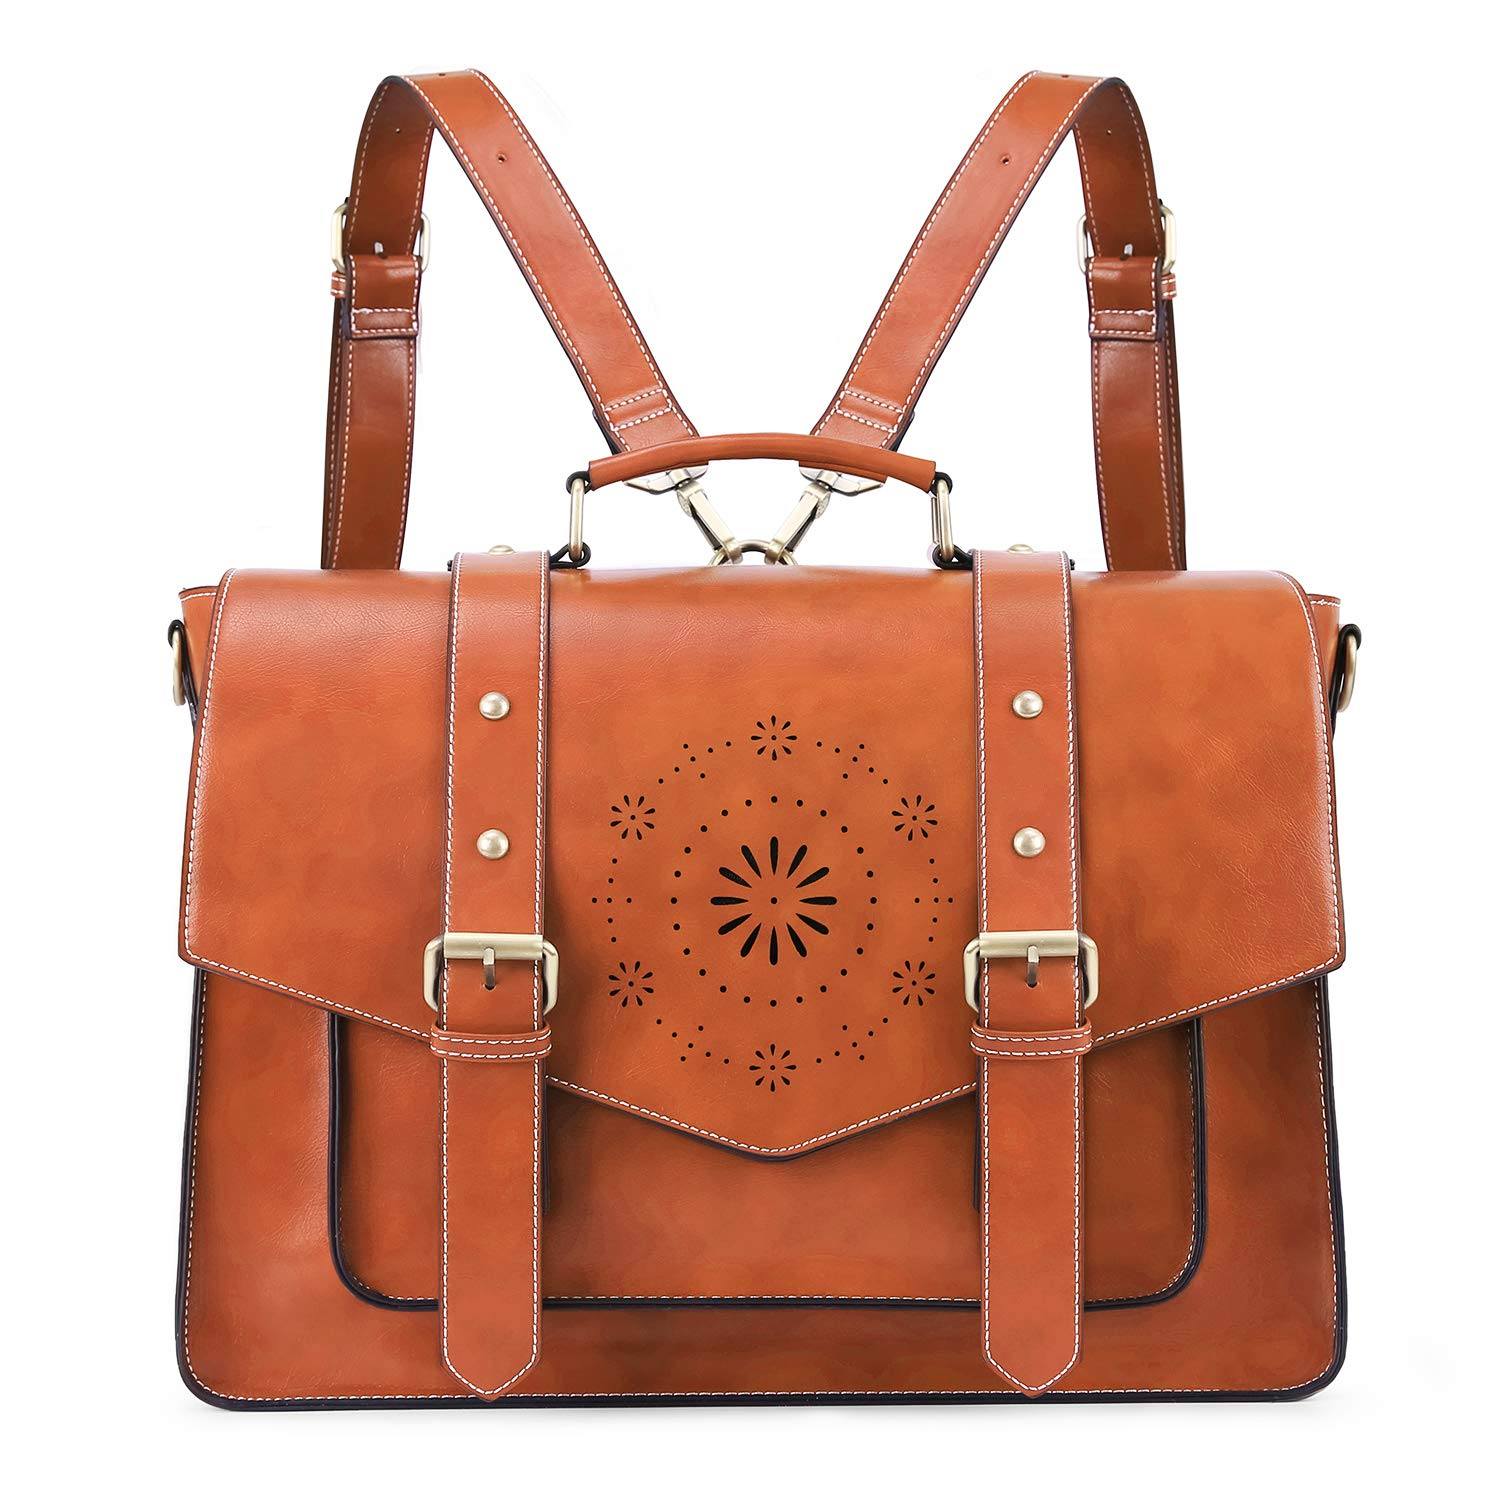 ECOSUSI Backpack for Women Briefcase Messenger Laptop Bag Vegan Leather Satchel Work Bags Fits 15.6 inch Laptops, Brown by ECOSUSI